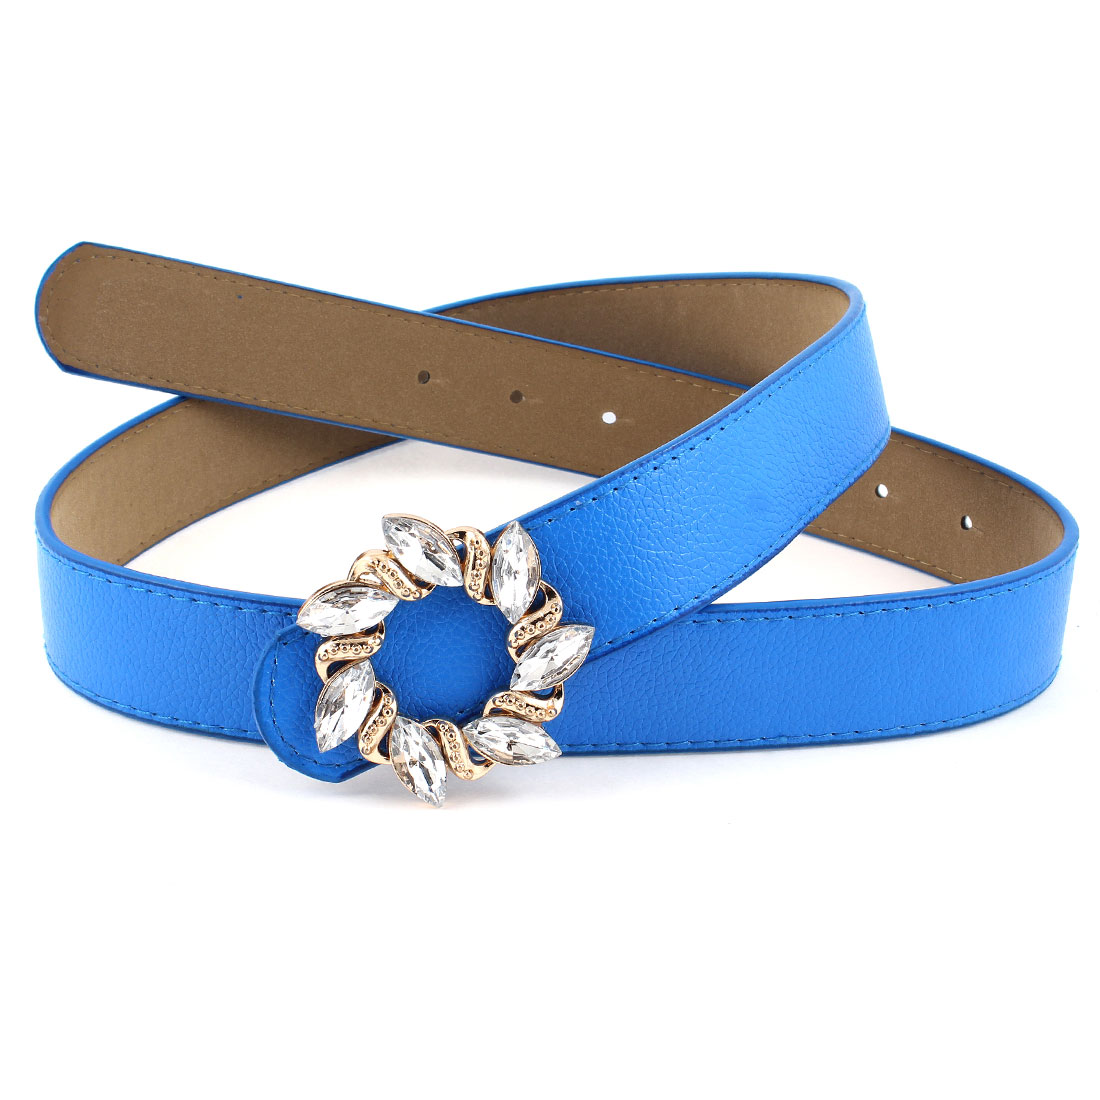 Faux Leather Press Buckle Perforated 3cm Wide Waist Belt Blue for Ladies